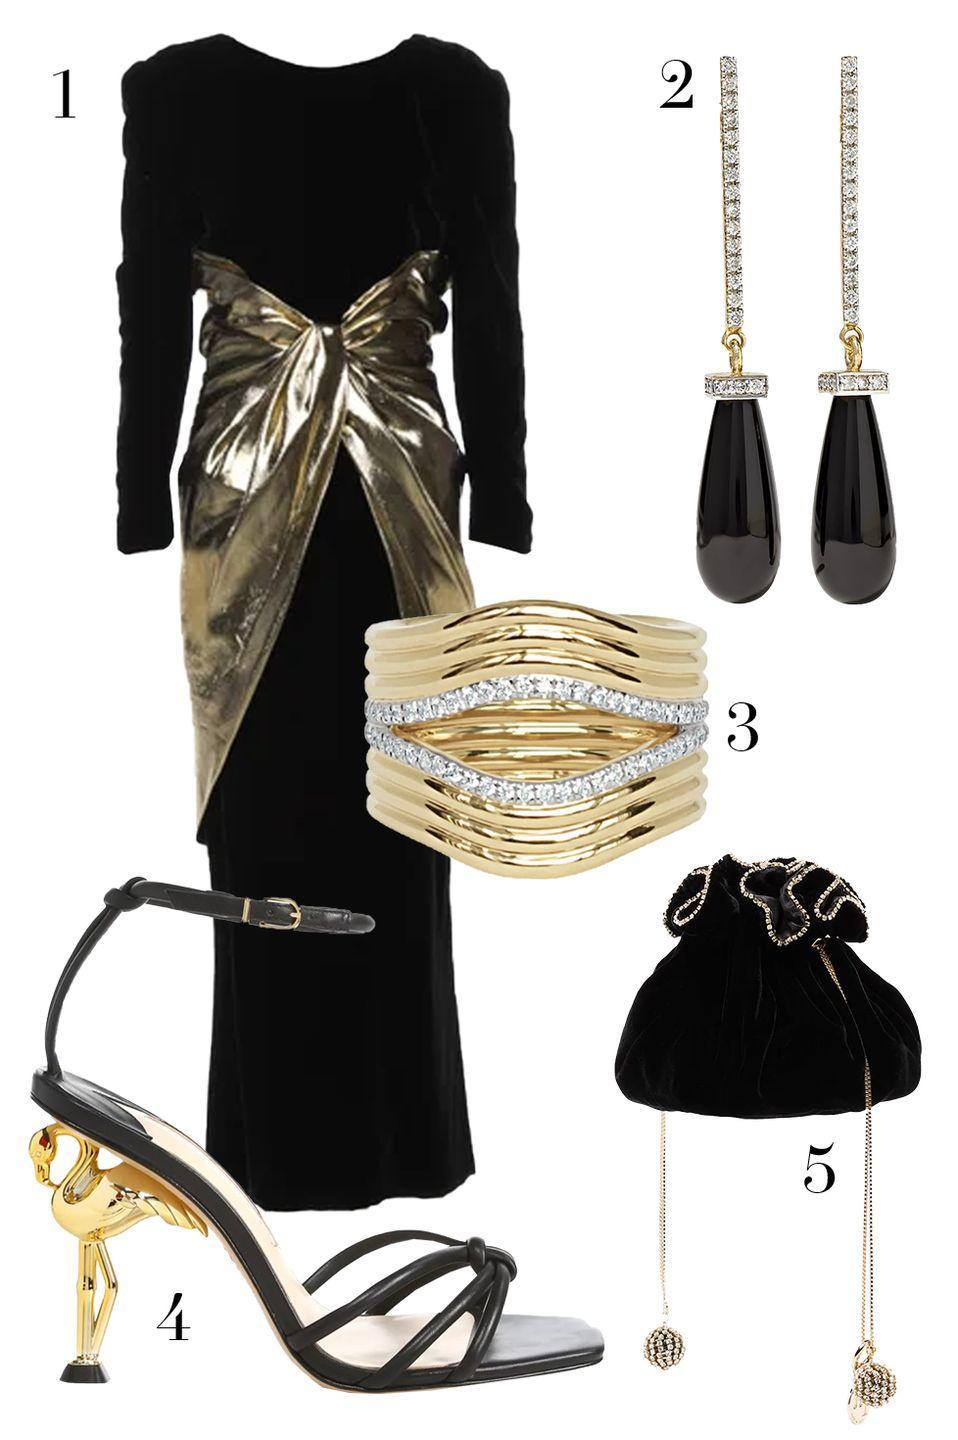 "<p>Sometimes you find just the right party dress... but don't exactly have a party for it yet. A head-turning discovery, like this Valentino dress, is worth the wait. Let it take center stage with coordinating black and gold accessories that offer just the right amount of sparkle. </p><ol><li><a href=""https://go.skimresources.com?id=74968X1525087&xs=1&url=https%3A%2F%2Fwww.therealreal.com%2Fproducts%2Fwomen%2Fclothing%2Fdresses%2Fvalentino-vintage-long-dress-7q6ko%3Fposition%3D14"" rel=""nofollow noopener"" target=""_blank"" data-ylk=""slk:Valentino via RealReal"" class=""link rapid-noclick-resp"">Valentino via RealReal</a> 2. <a href=""https://go.skimresources.com?id=74968X1525087&xs=1&url=https%3A%2F%2Fwww.net-a-porter.com%2Fen-us%2Fshop%2Fproduct%2Fmateo%2F14-karat-gold-onyx-and-diamond-earrings%2F1225843"" rel=""nofollow noopener"" target=""_blank"" data-ylk=""slk:Mateo"" class=""link rapid-noclick-resp"">Mateo</a> 3. <a href=""https://go.skimresources.com?id=74968X1525087&xs=1&url=https%3A%2F%2Fwww.almasika.com%2Fcollections%2Frings%2Fproducts%2F17"" rel=""nofollow noopener"" target=""_blank"" data-ylk=""slk:Almasika"" class=""link rapid-noclick-resp"">Almasika</a> 4. <a href=""https://go.skimresources.com?id=74968X1525087&xs=1&url=https%3A%2F%2Fwww.saksfifthavenue.com%2Fsophia-webster-flo-flamingo-heel-leather-sandals%2Fproduct%2F0400012530132%3FFOLDER%253C%253Efolder_id%3D2534374306624269%26R%3D5057467214155%26P_name%3DSophia%2BWebster%26N%3D306624269%2B4294929607%2B4294929608%2B4294877656%26bmUID%3DnddGCRa"" rel=""nofollow noopener"" target=""_blank"" data-ylk=""slk:Sophia Webster"" class=""link rapid-noclick-resp"">Sophia Webster</a> 5. <a href=""https://go.skimresources.com?id=74968X1525087&xs=1&url=https%3A%2F%2Fwww.farfetch.com%2Fshopping%2Fwomen%2Frosantica-black-moneta-clutch-bag-item-15143300.aspx%3Fstoreid%3D9359"" rel=""nofollow noopener"" target=""_blank"" data-ylk=""slk:Rosantica"" class=""link rapid-noclick-resp"">Rosantica</a></li></ol>"